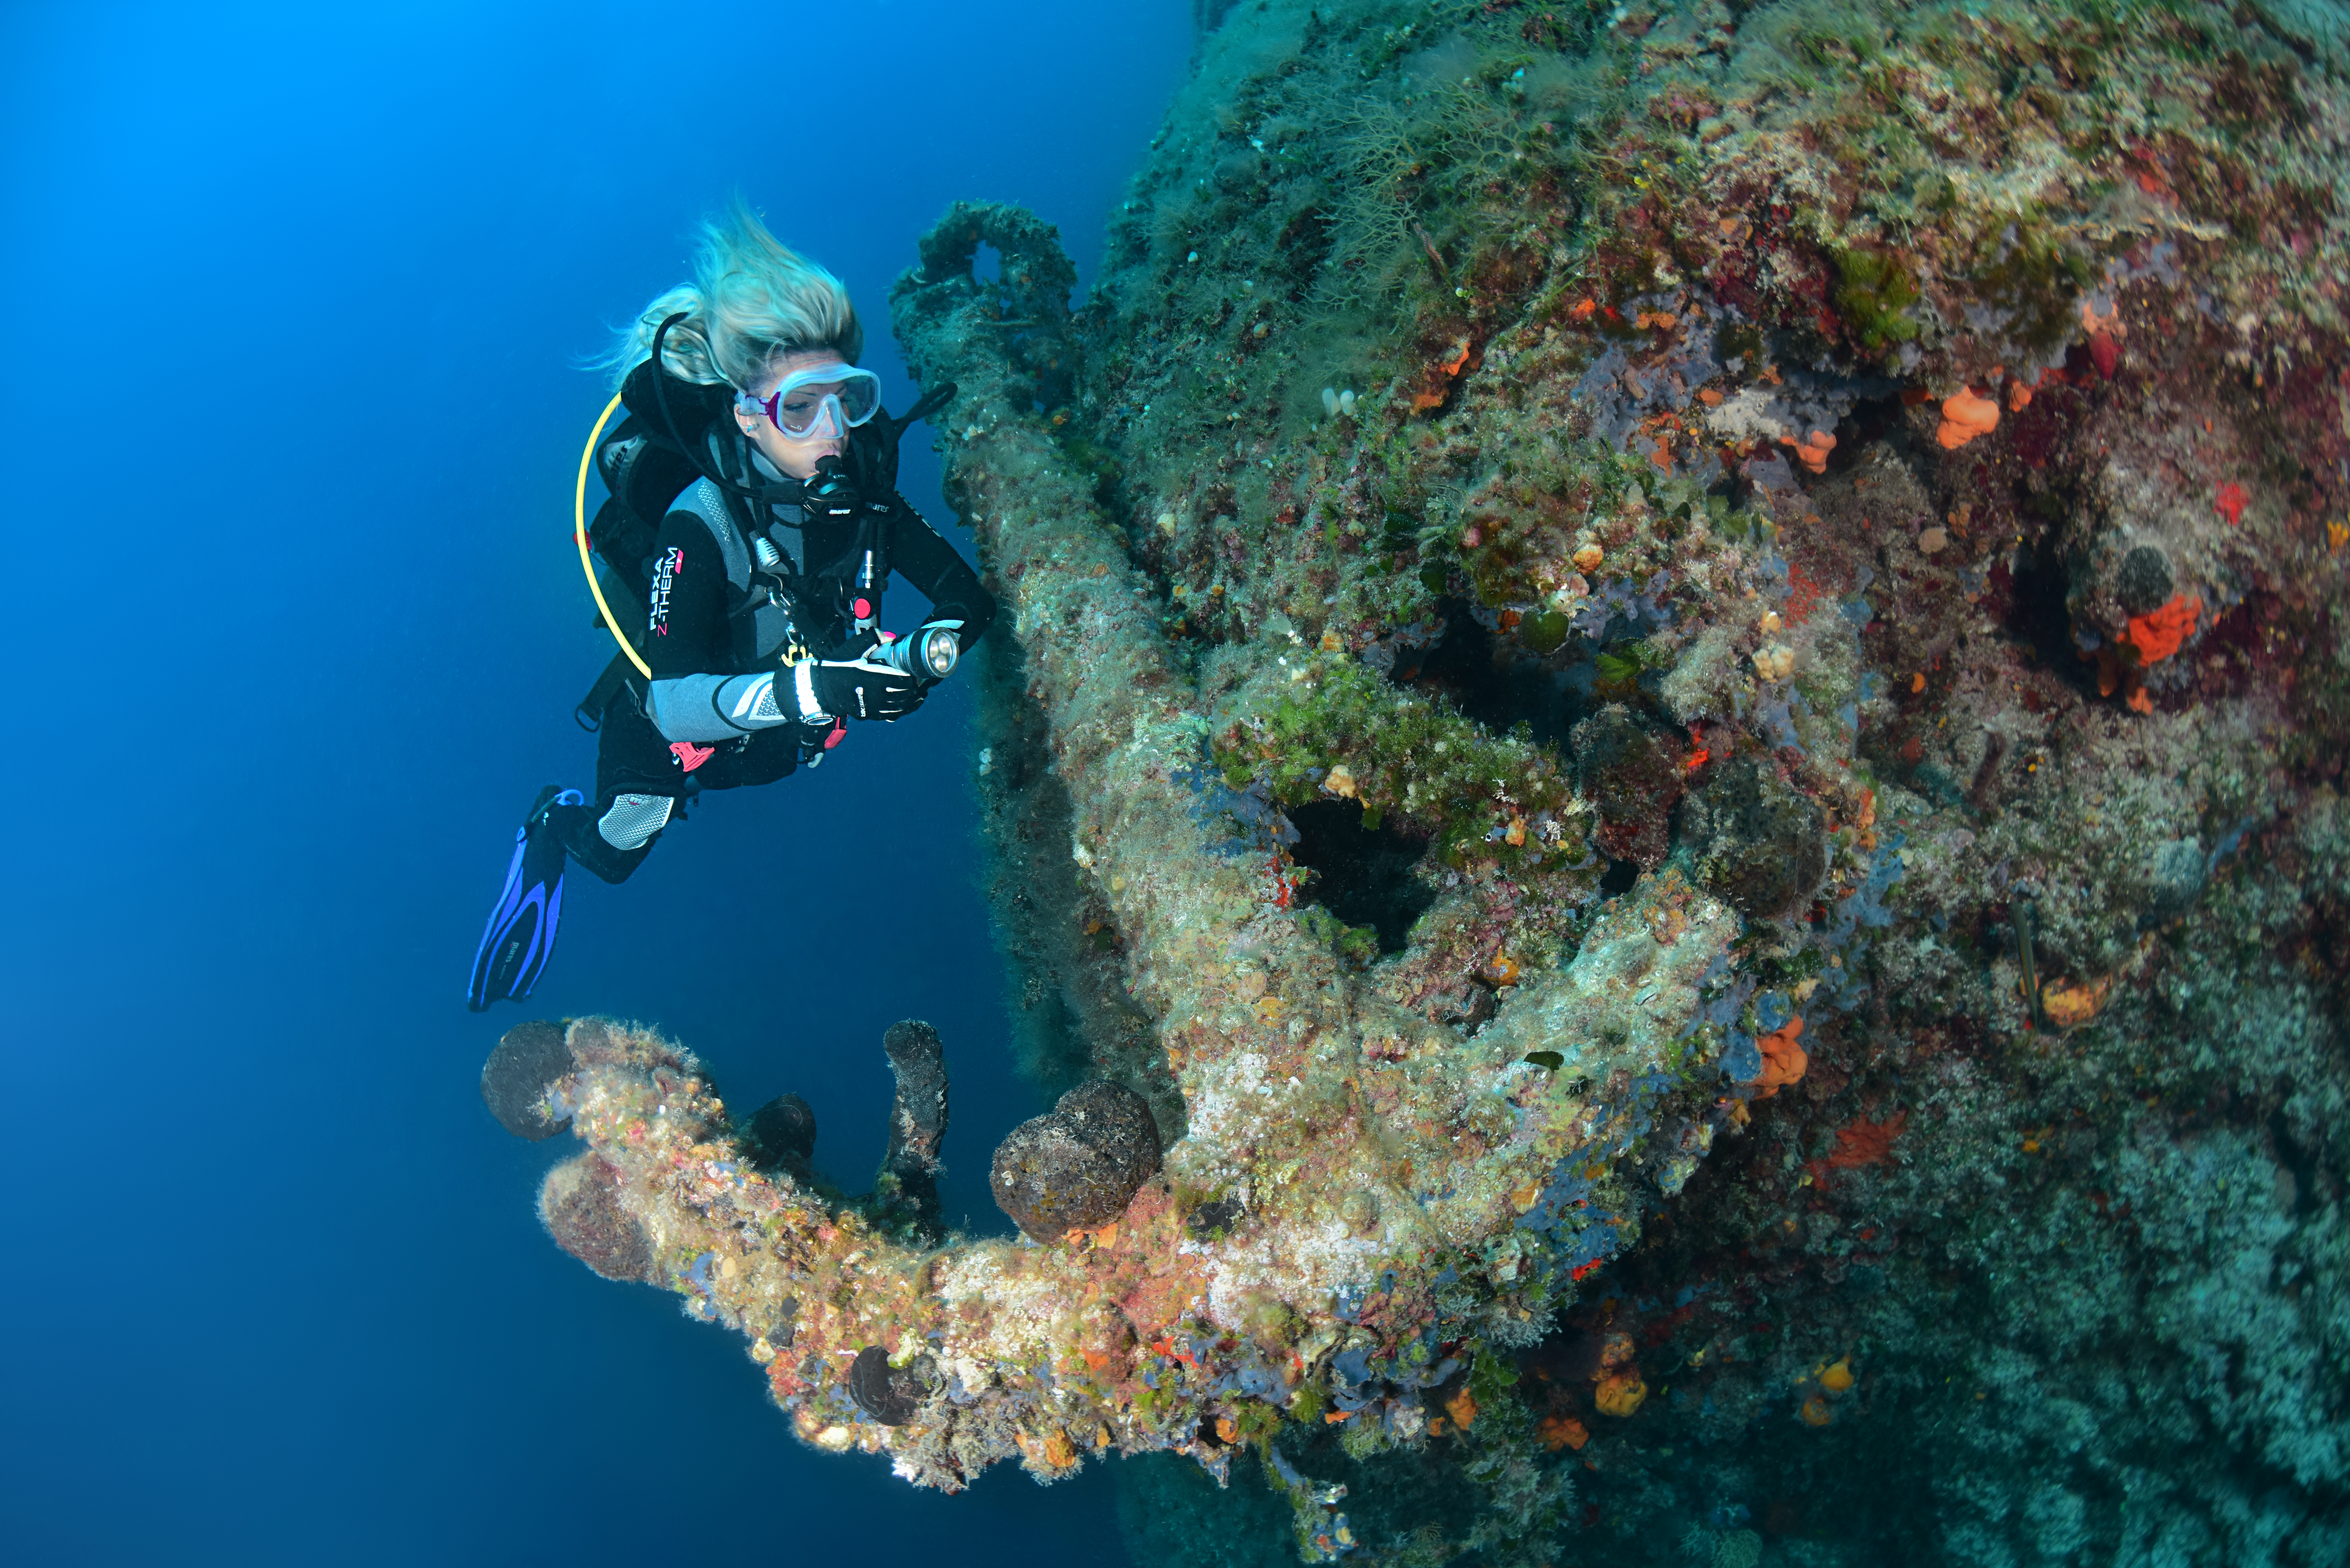 Diver and the anchor